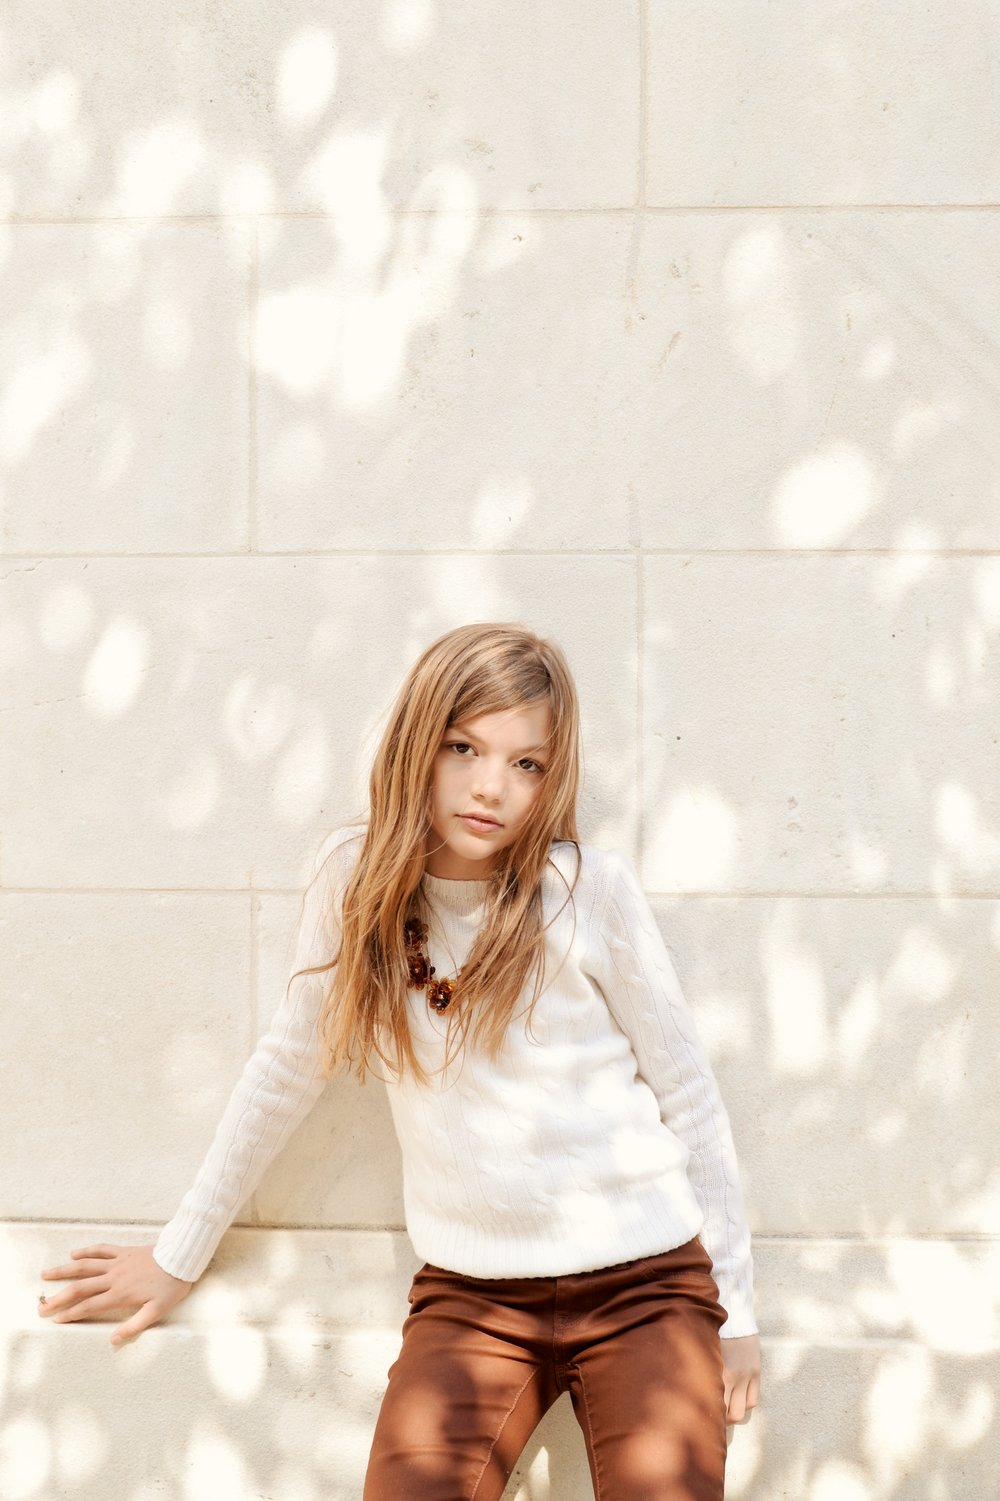 Enfant+Street+Style+by+Gina+Kim+Photography-43.jpeg